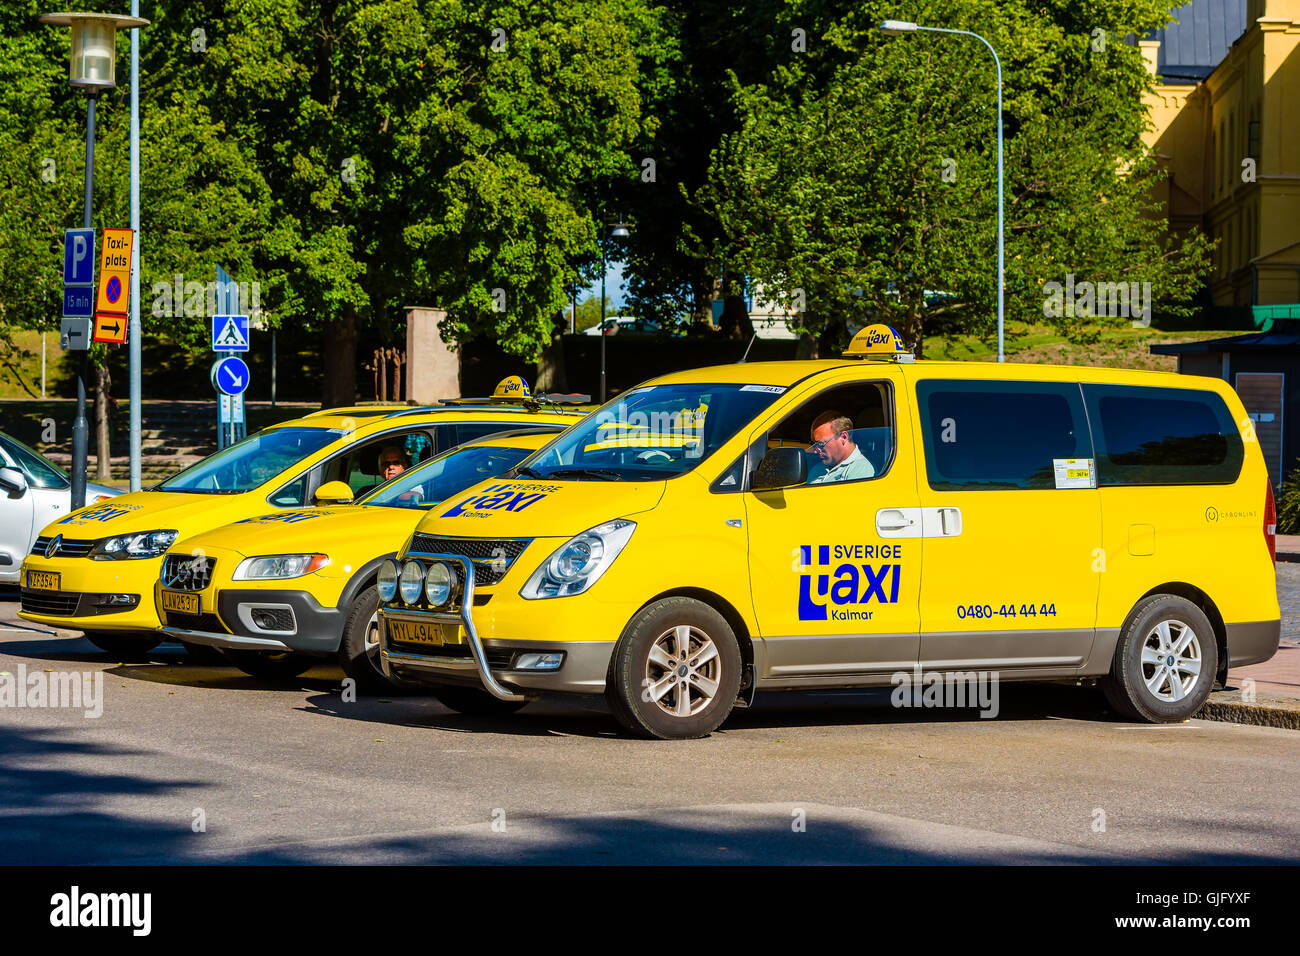 Kalmar, Sweden - August 10, 2016: Three yellow cab or taxi cars waiting for passengers. Sverige Taxi logo on cars. - Stock Image